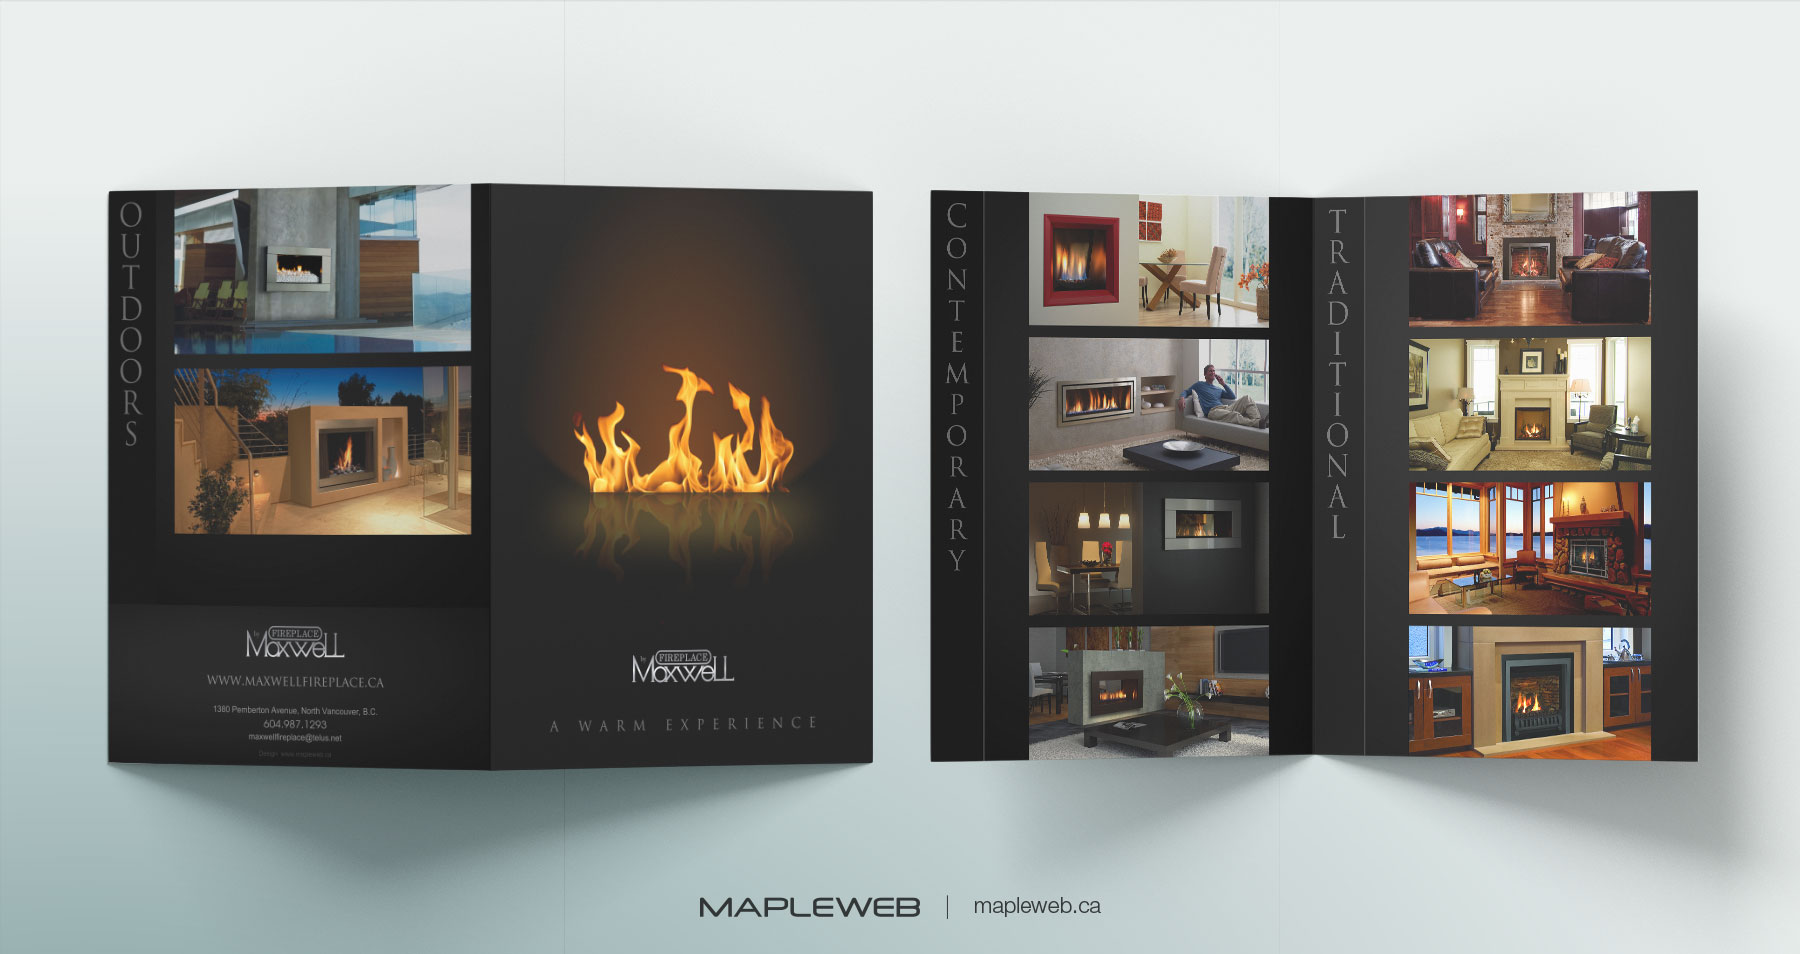 Fireplace by Maxwell